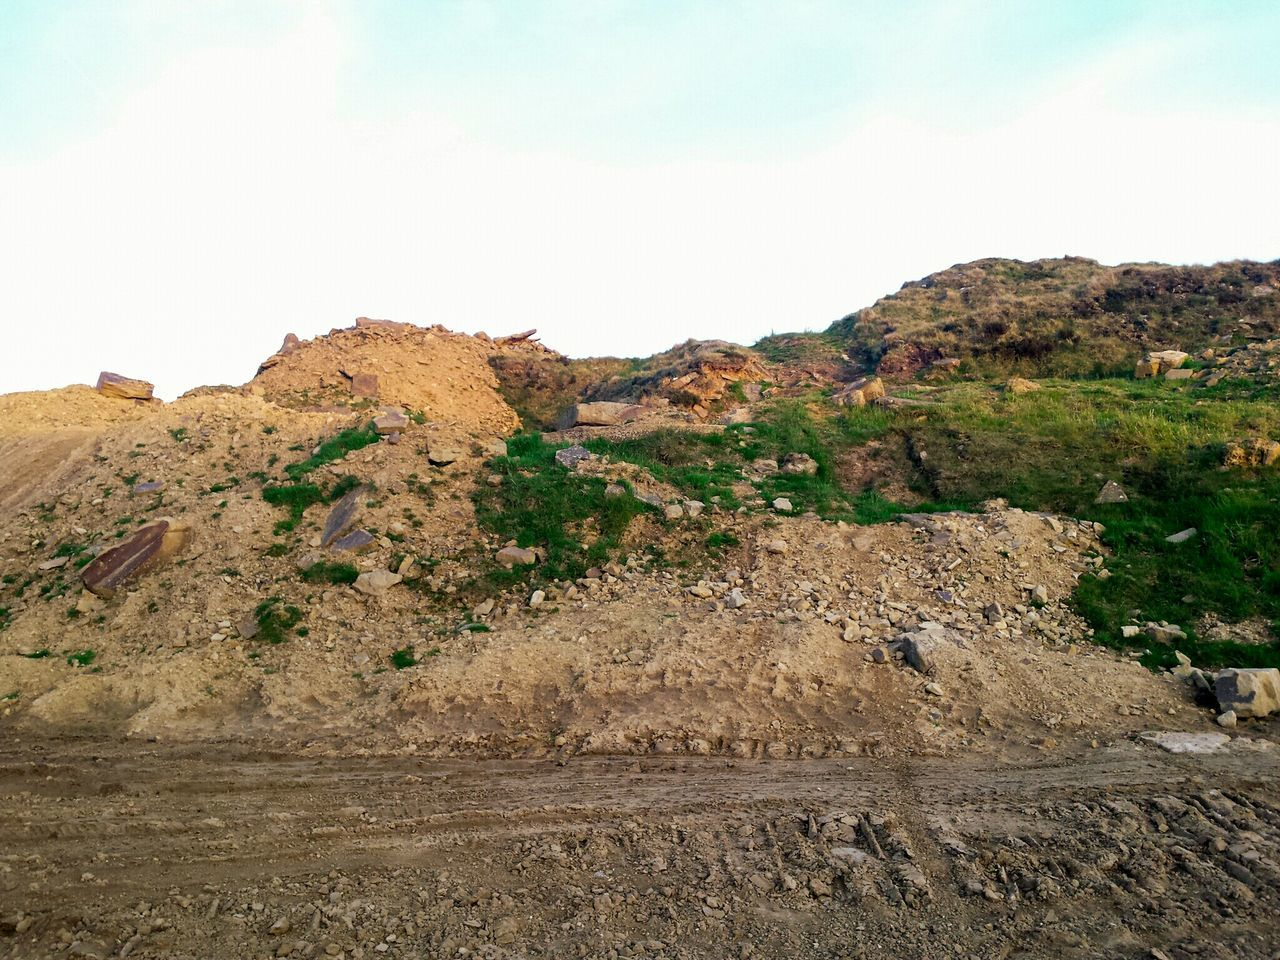 Desert Outdoors Rock - Object Landscape Nature No People Day Arid Climate Scenics Mountain Sky Sand Dune Beauty In Nature The Great Outdoors - 2017 EyeEm Awards Sunlight Quarry Sand Earth Site Work Stone Rock BYOPaper! Landscapes Beauty In Nature